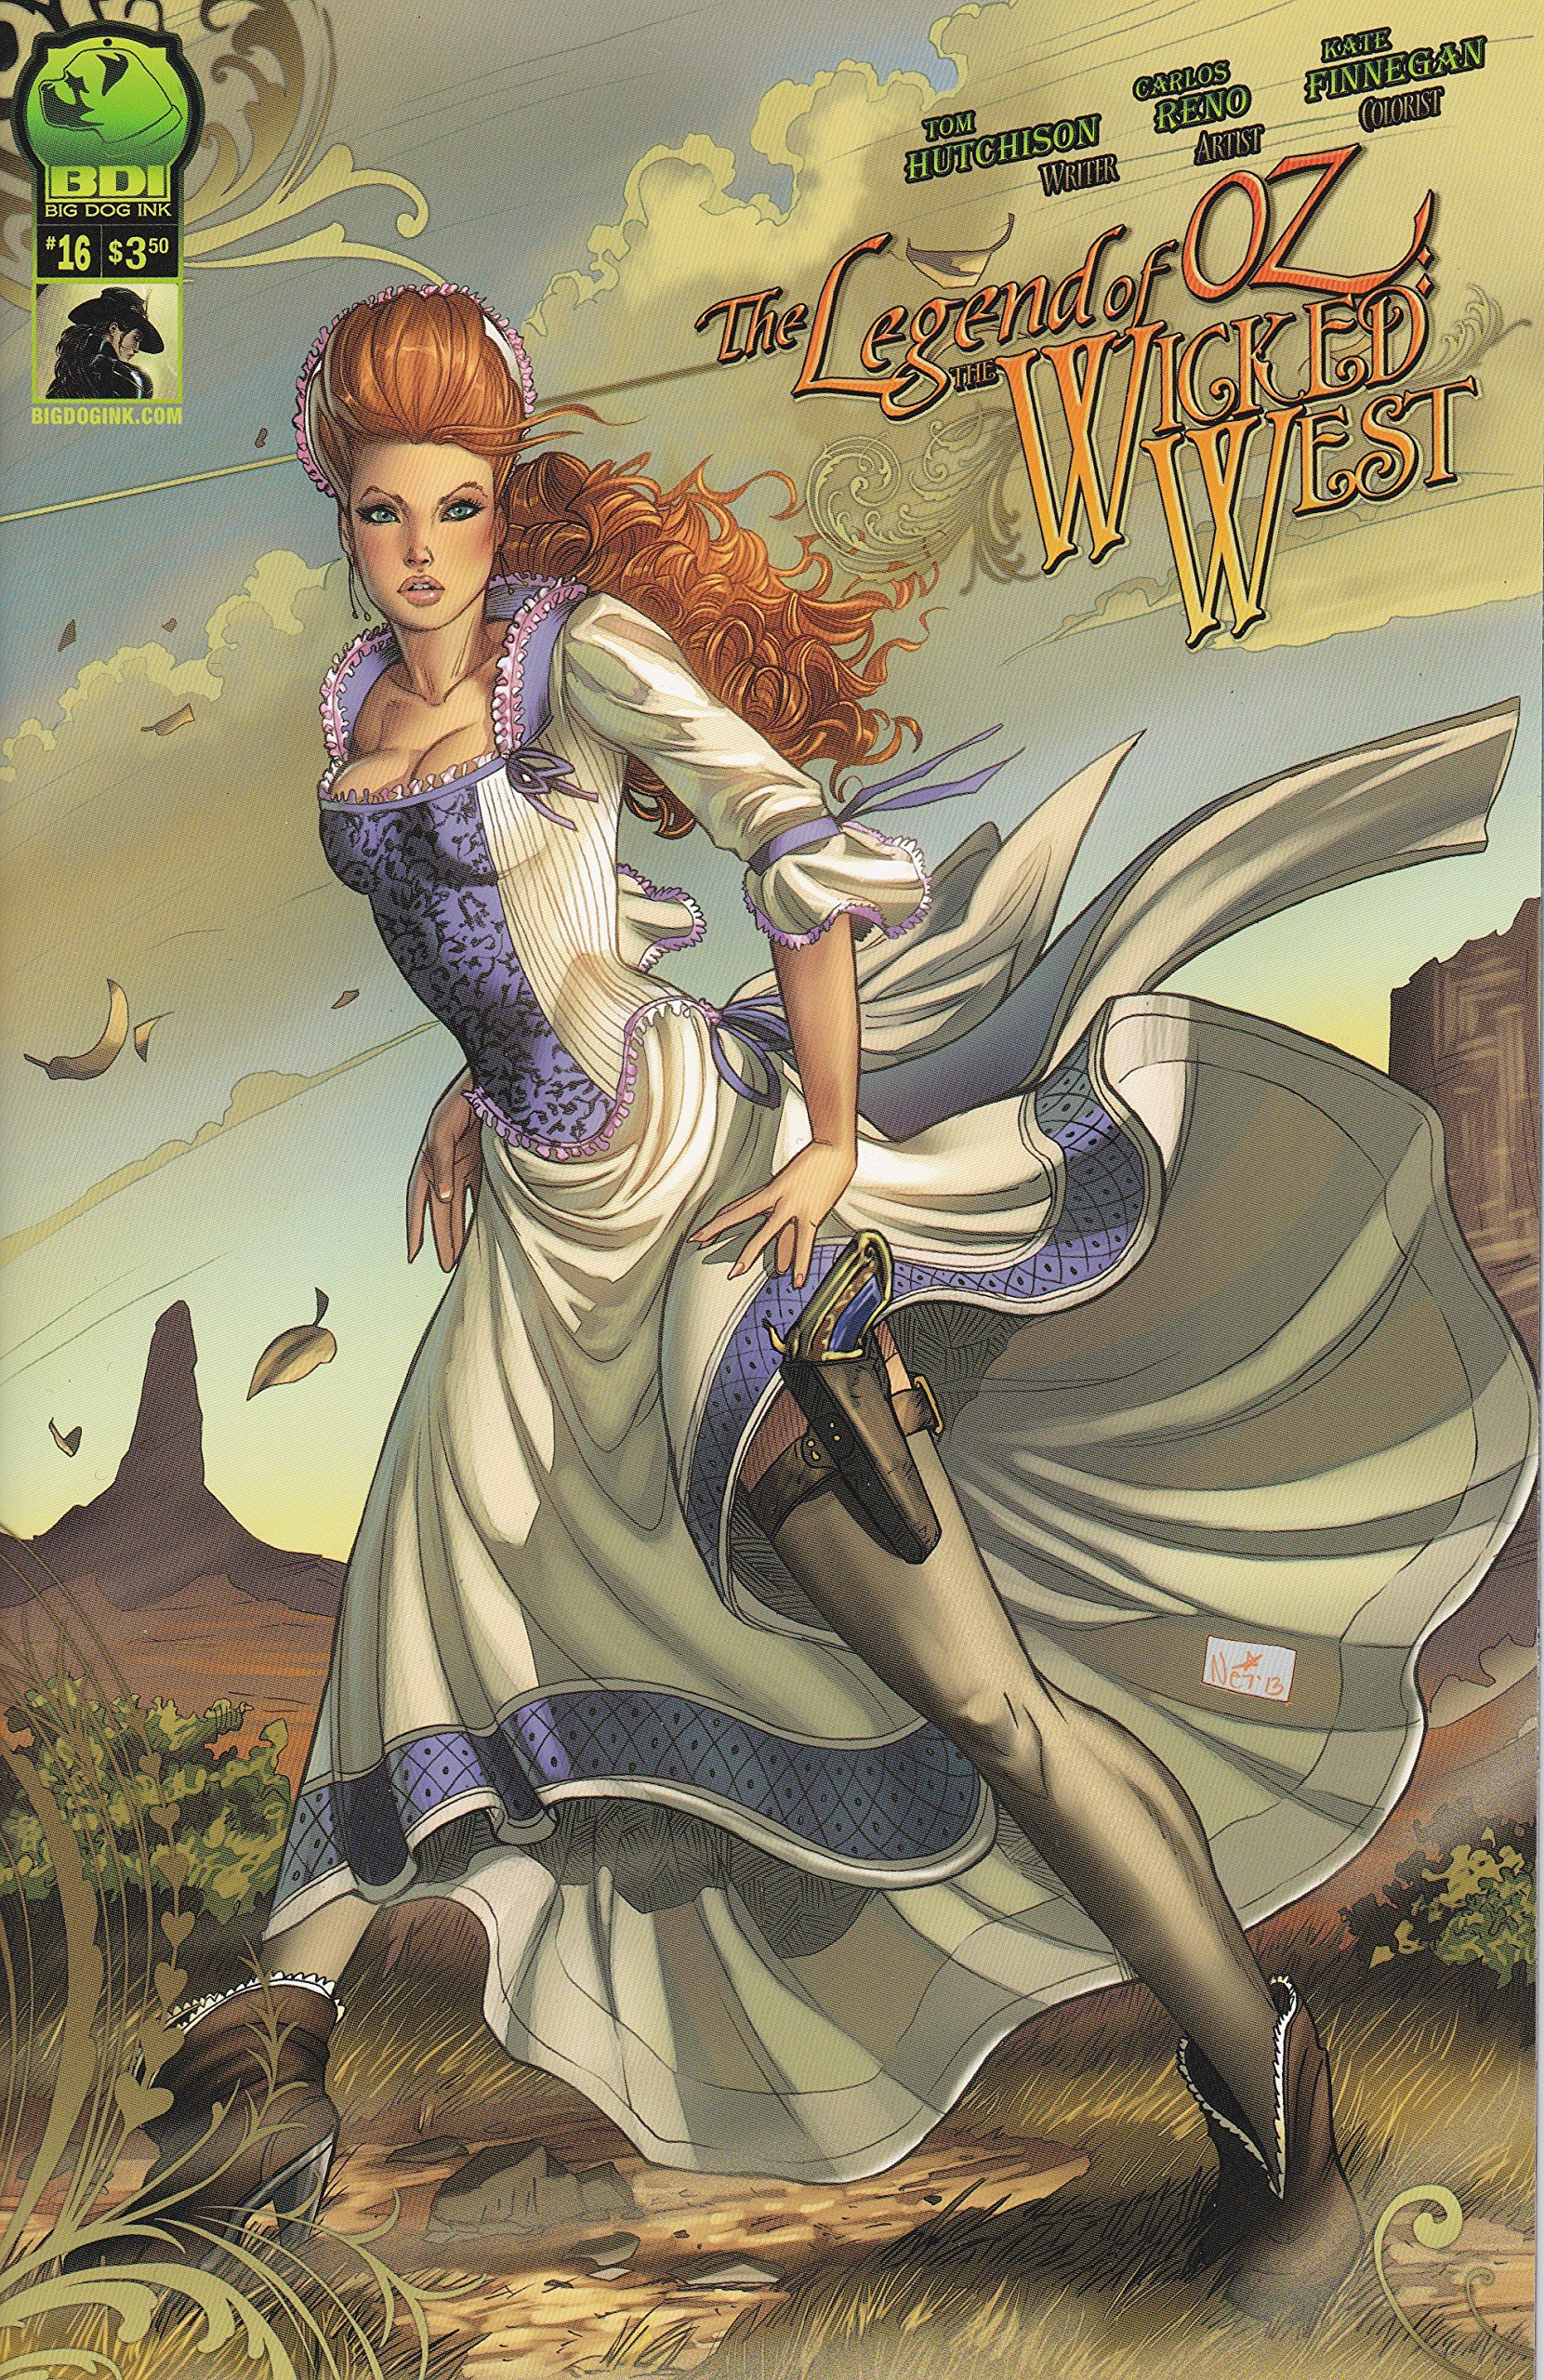 Download The Legend of Oz The Wicked West Vol 2. No. 16 Cover B ebook